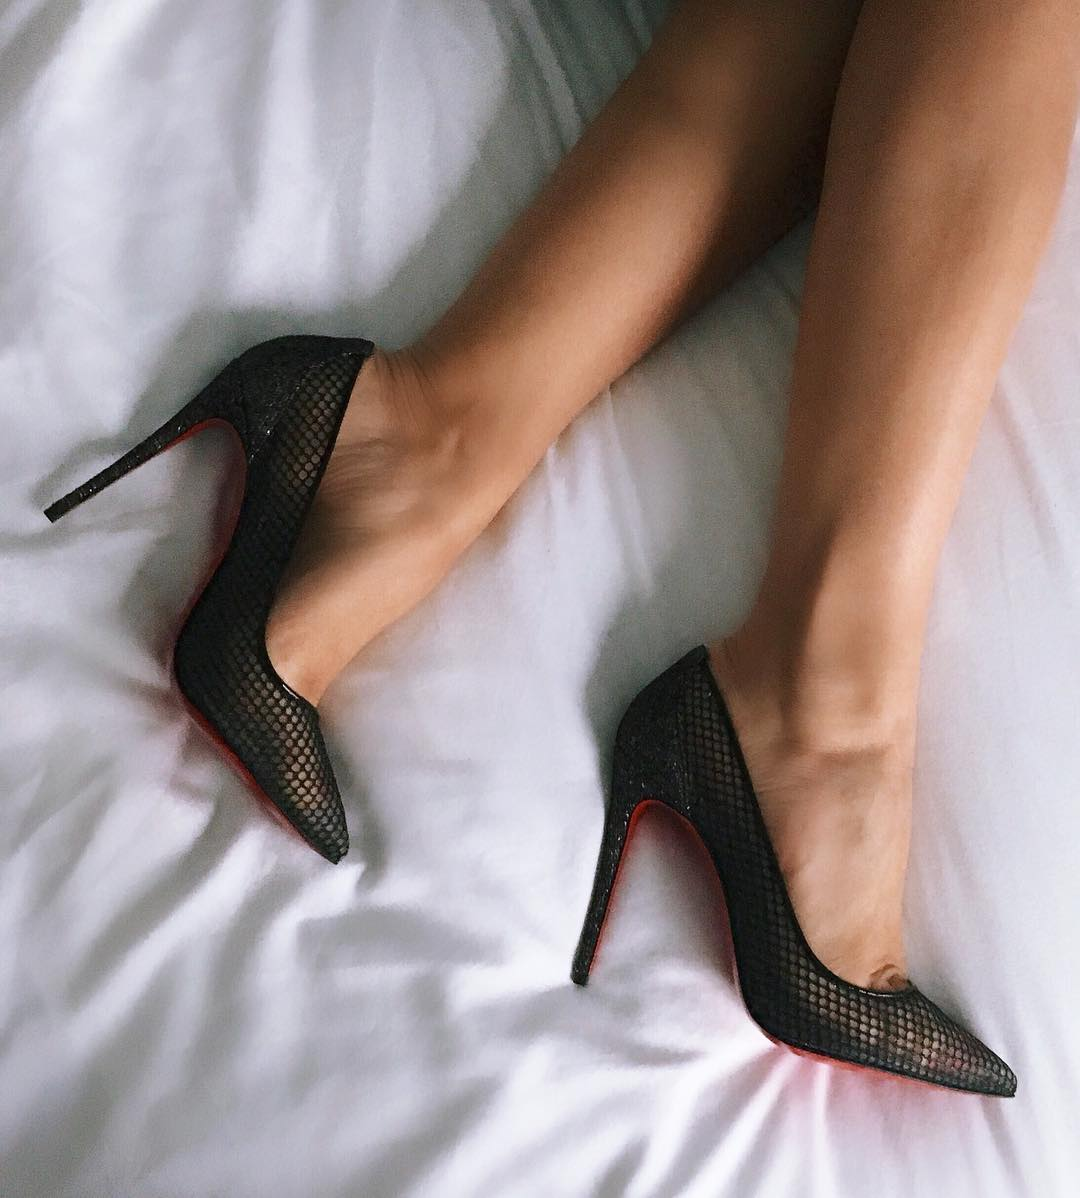 mel-ronnie-stay-comfortable-in-heels-mesh-black-louboutins